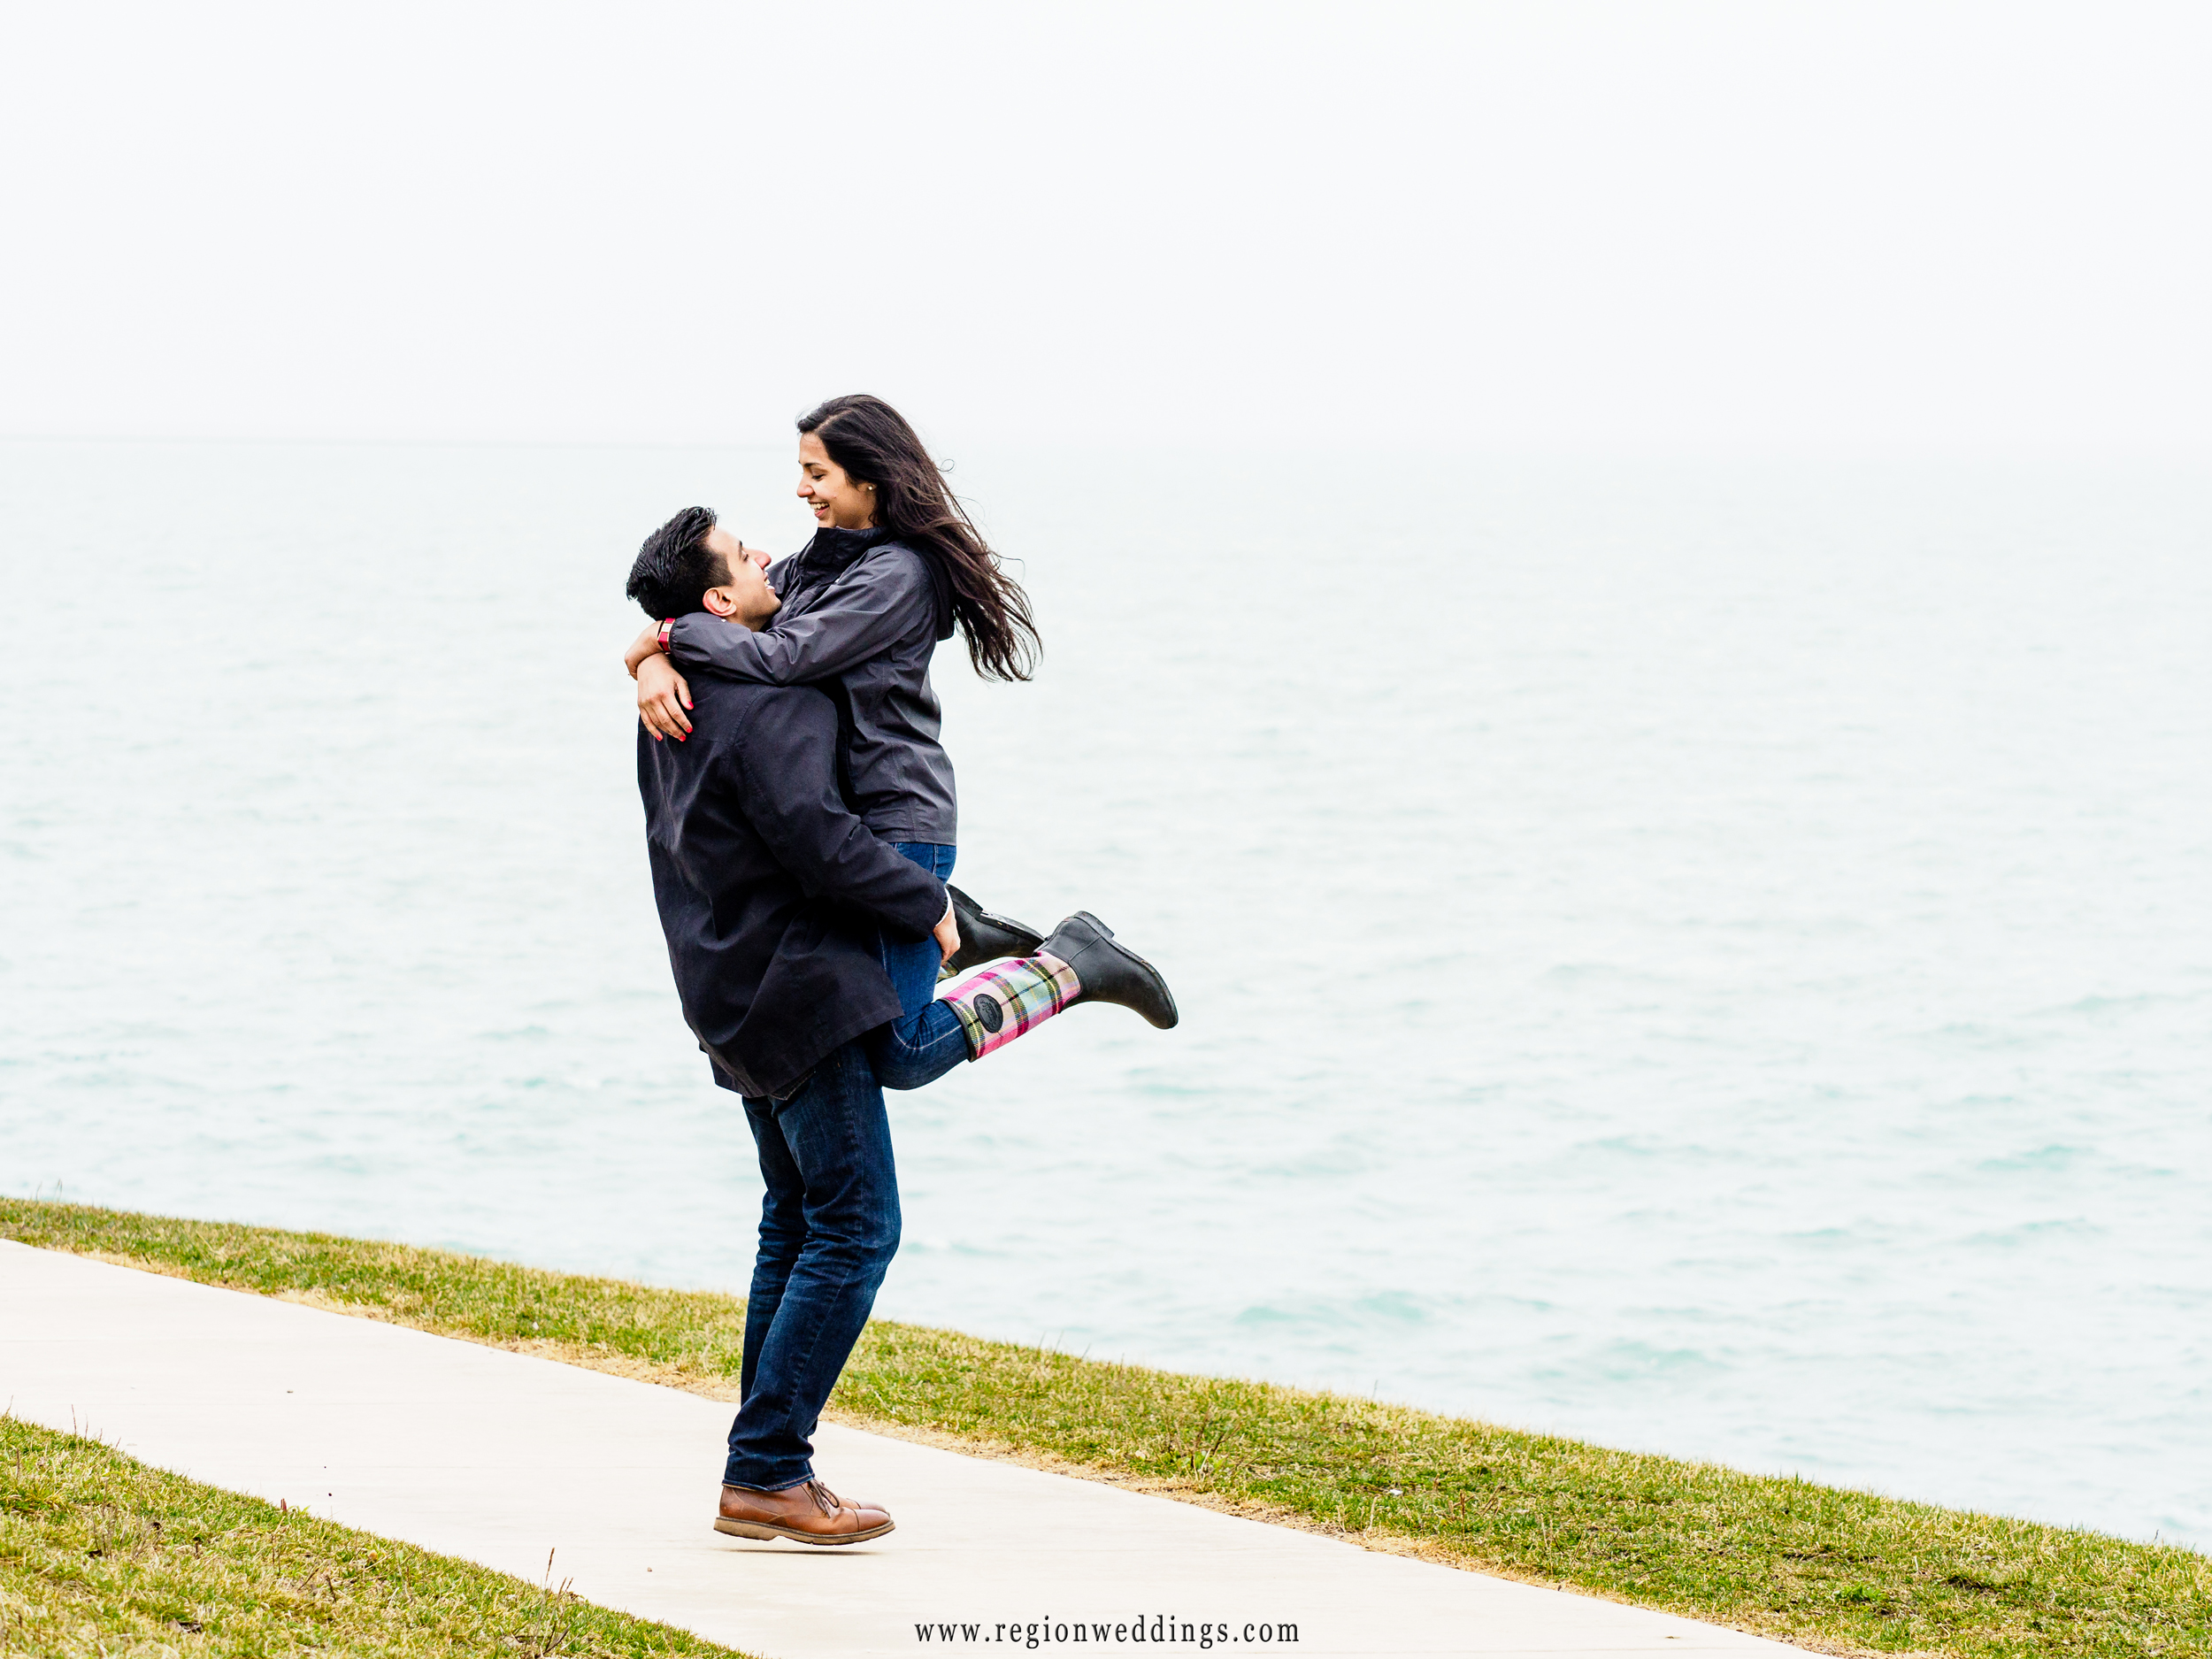 A newly engaged couple celebrates with Lake Michigan in the background in Chicago.